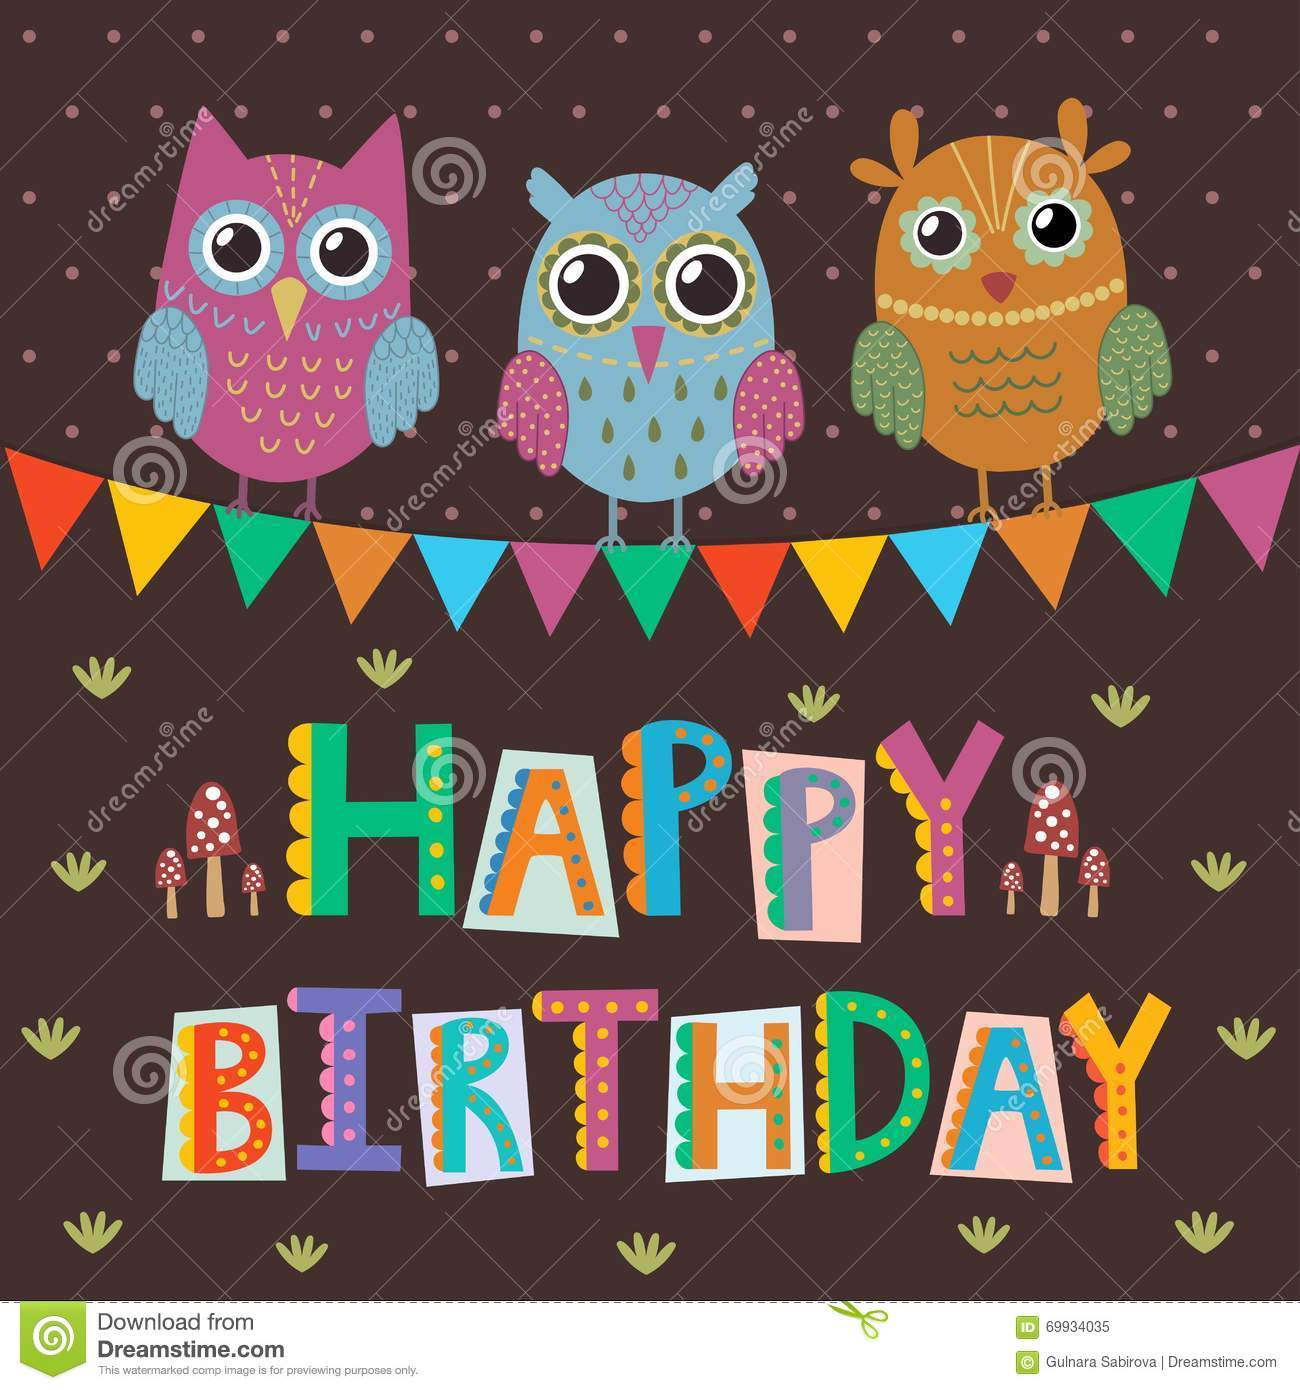 Happy Birthday Greeting Card With Cute Owls And Funny Text